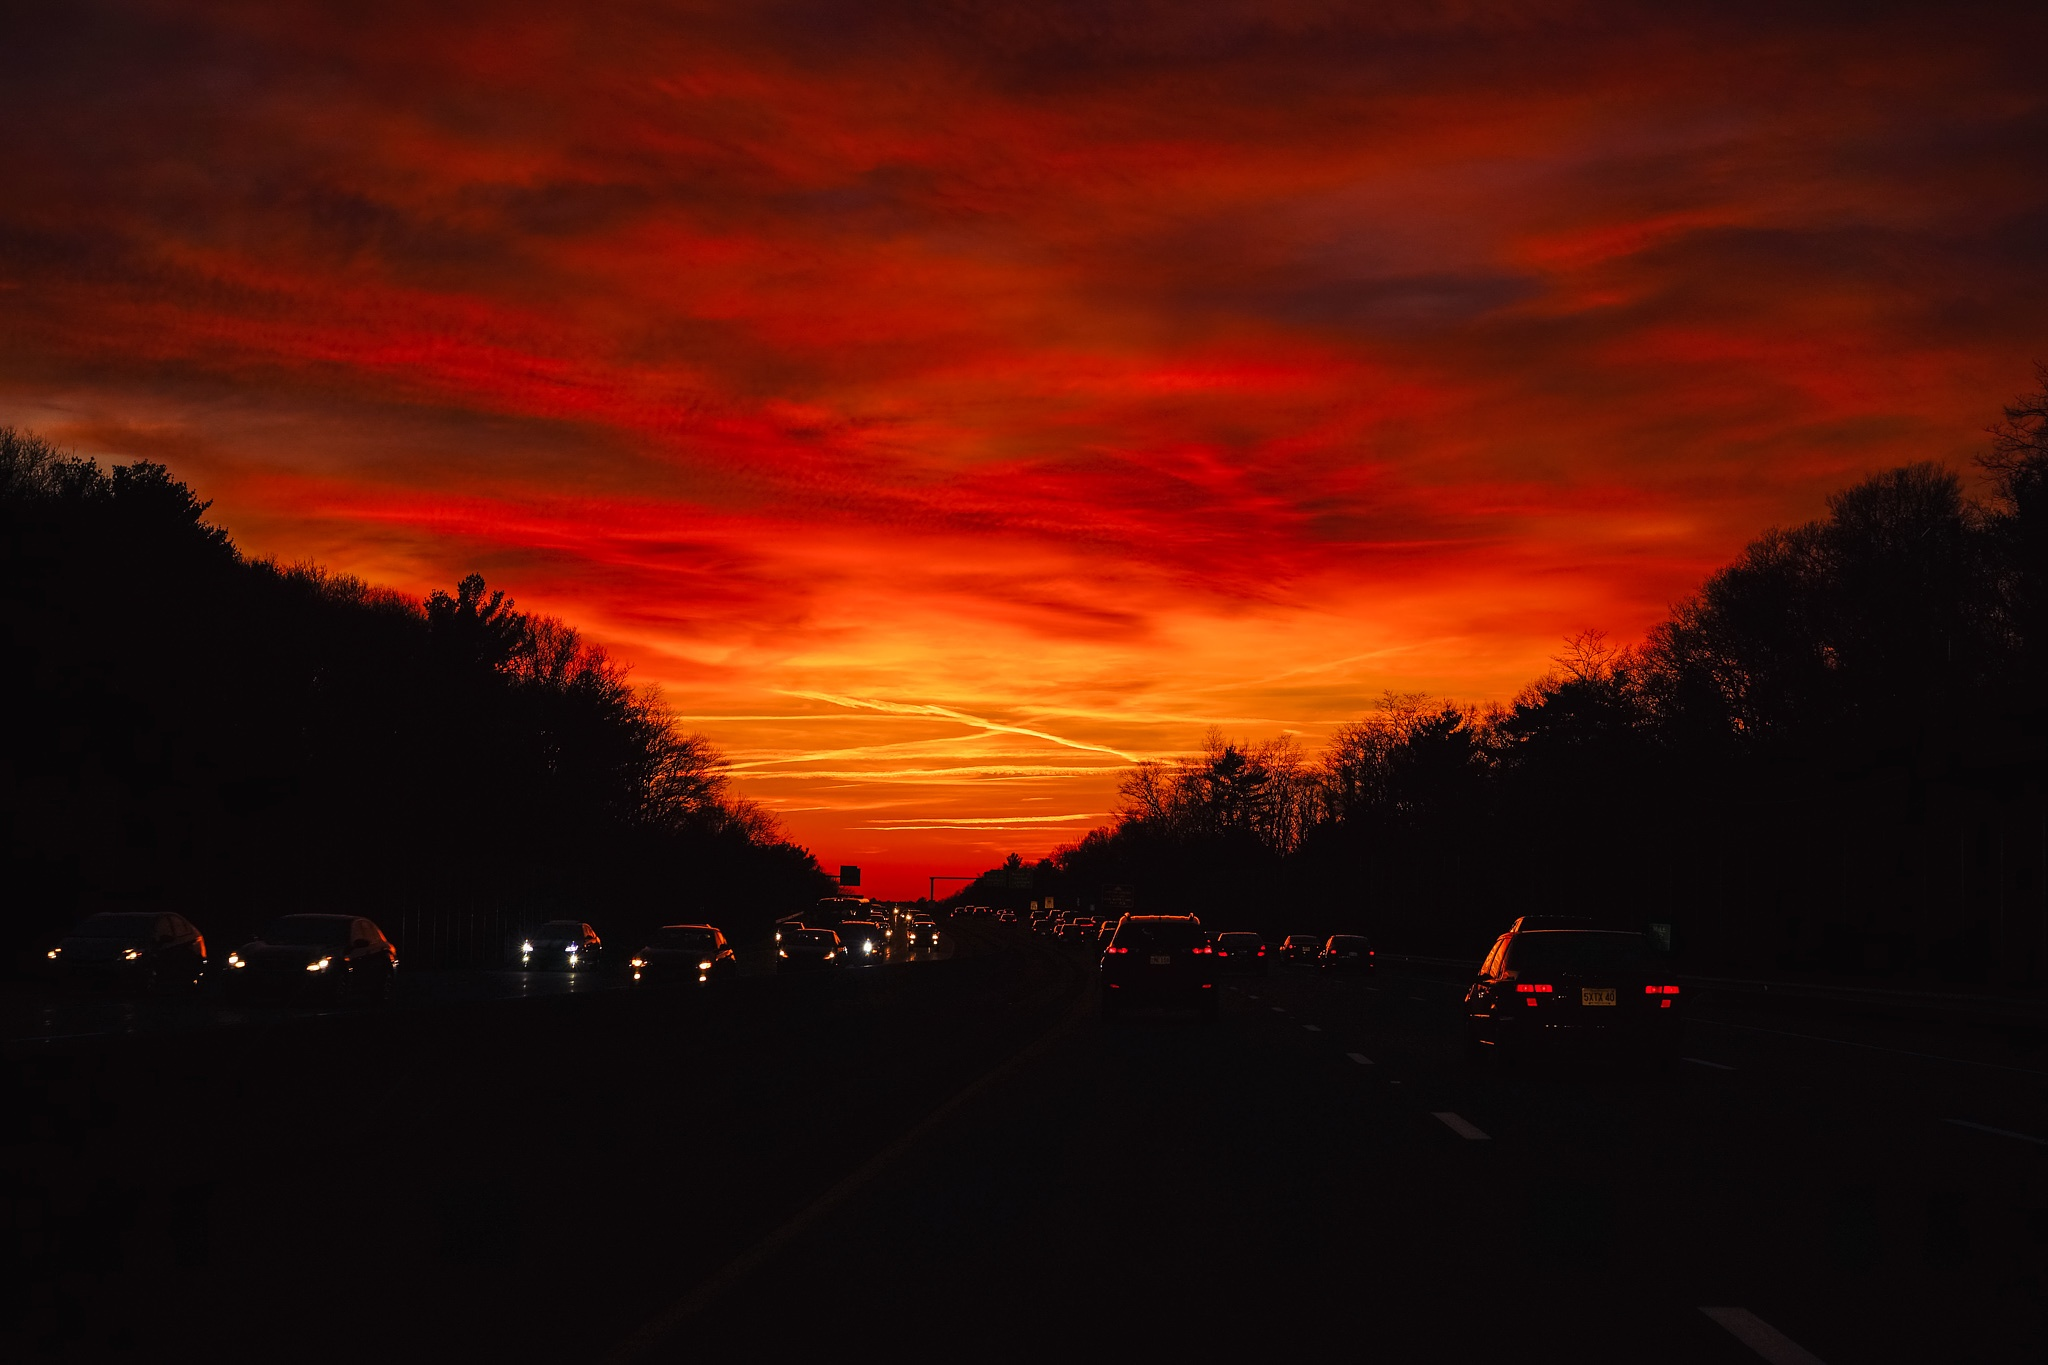 Sunset Traffic by Jane Garchinsky